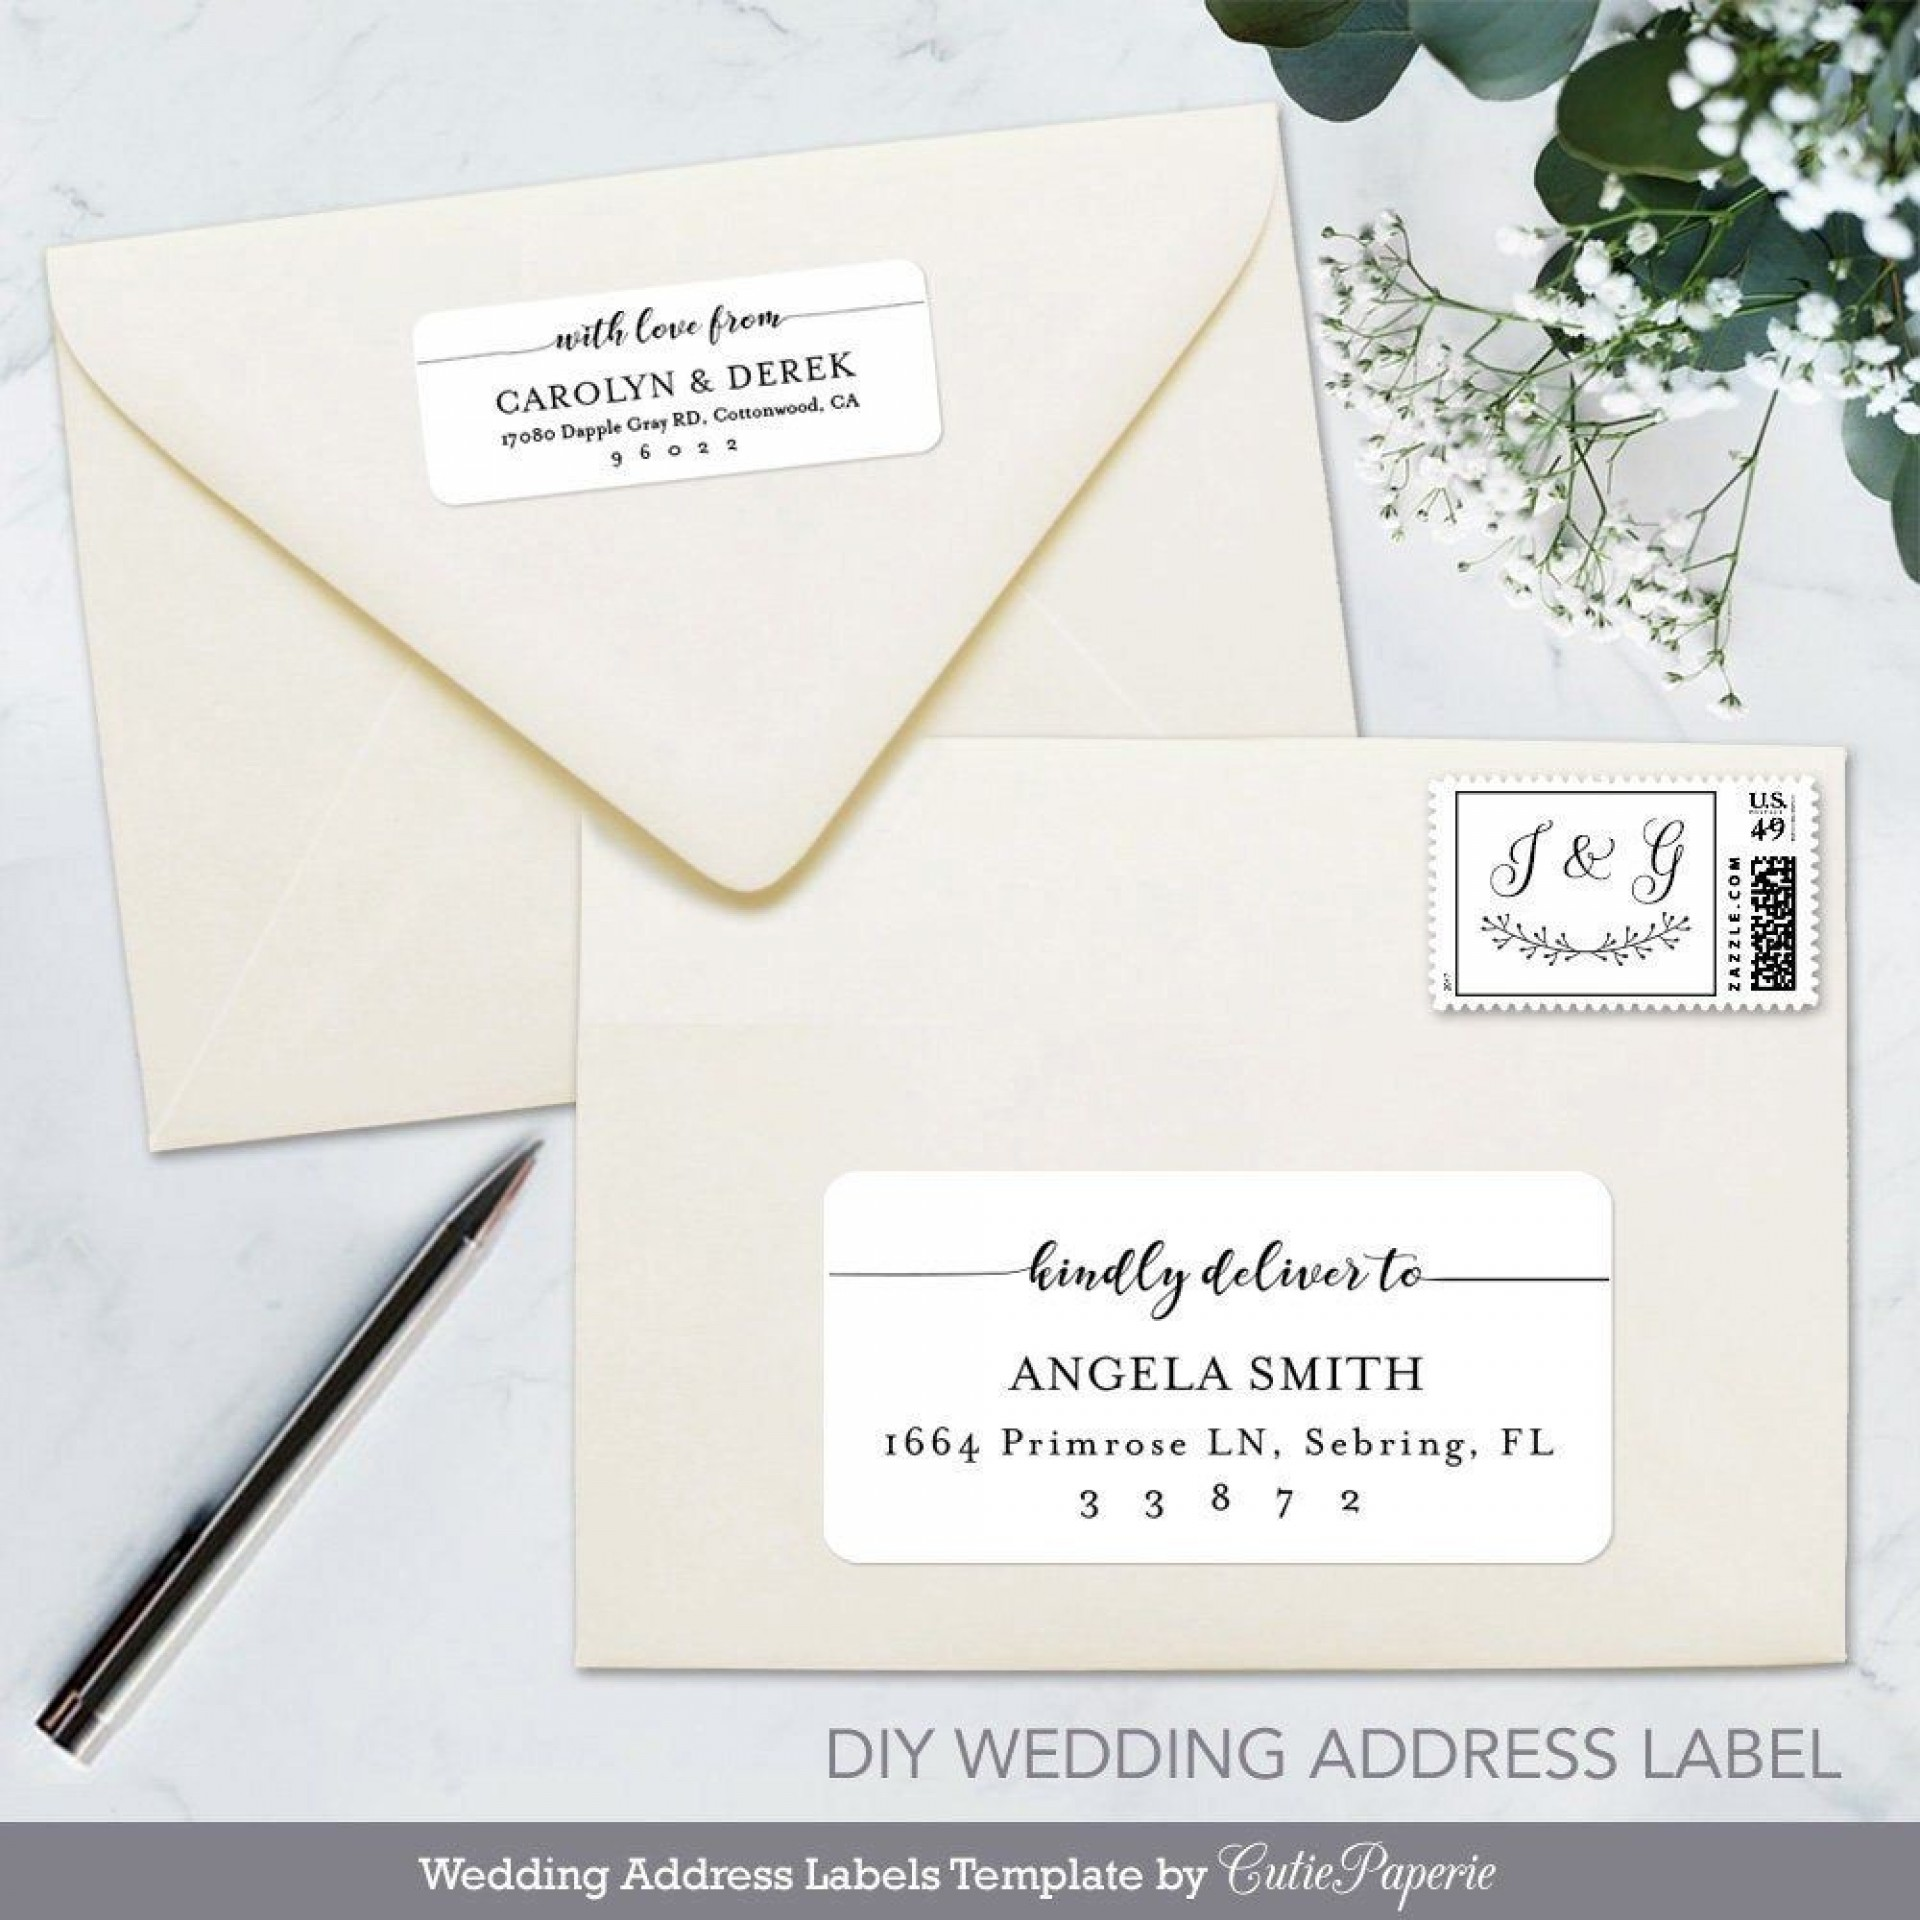 006 Excellent Wedding Addres Label Template Picture  Free Printable1920